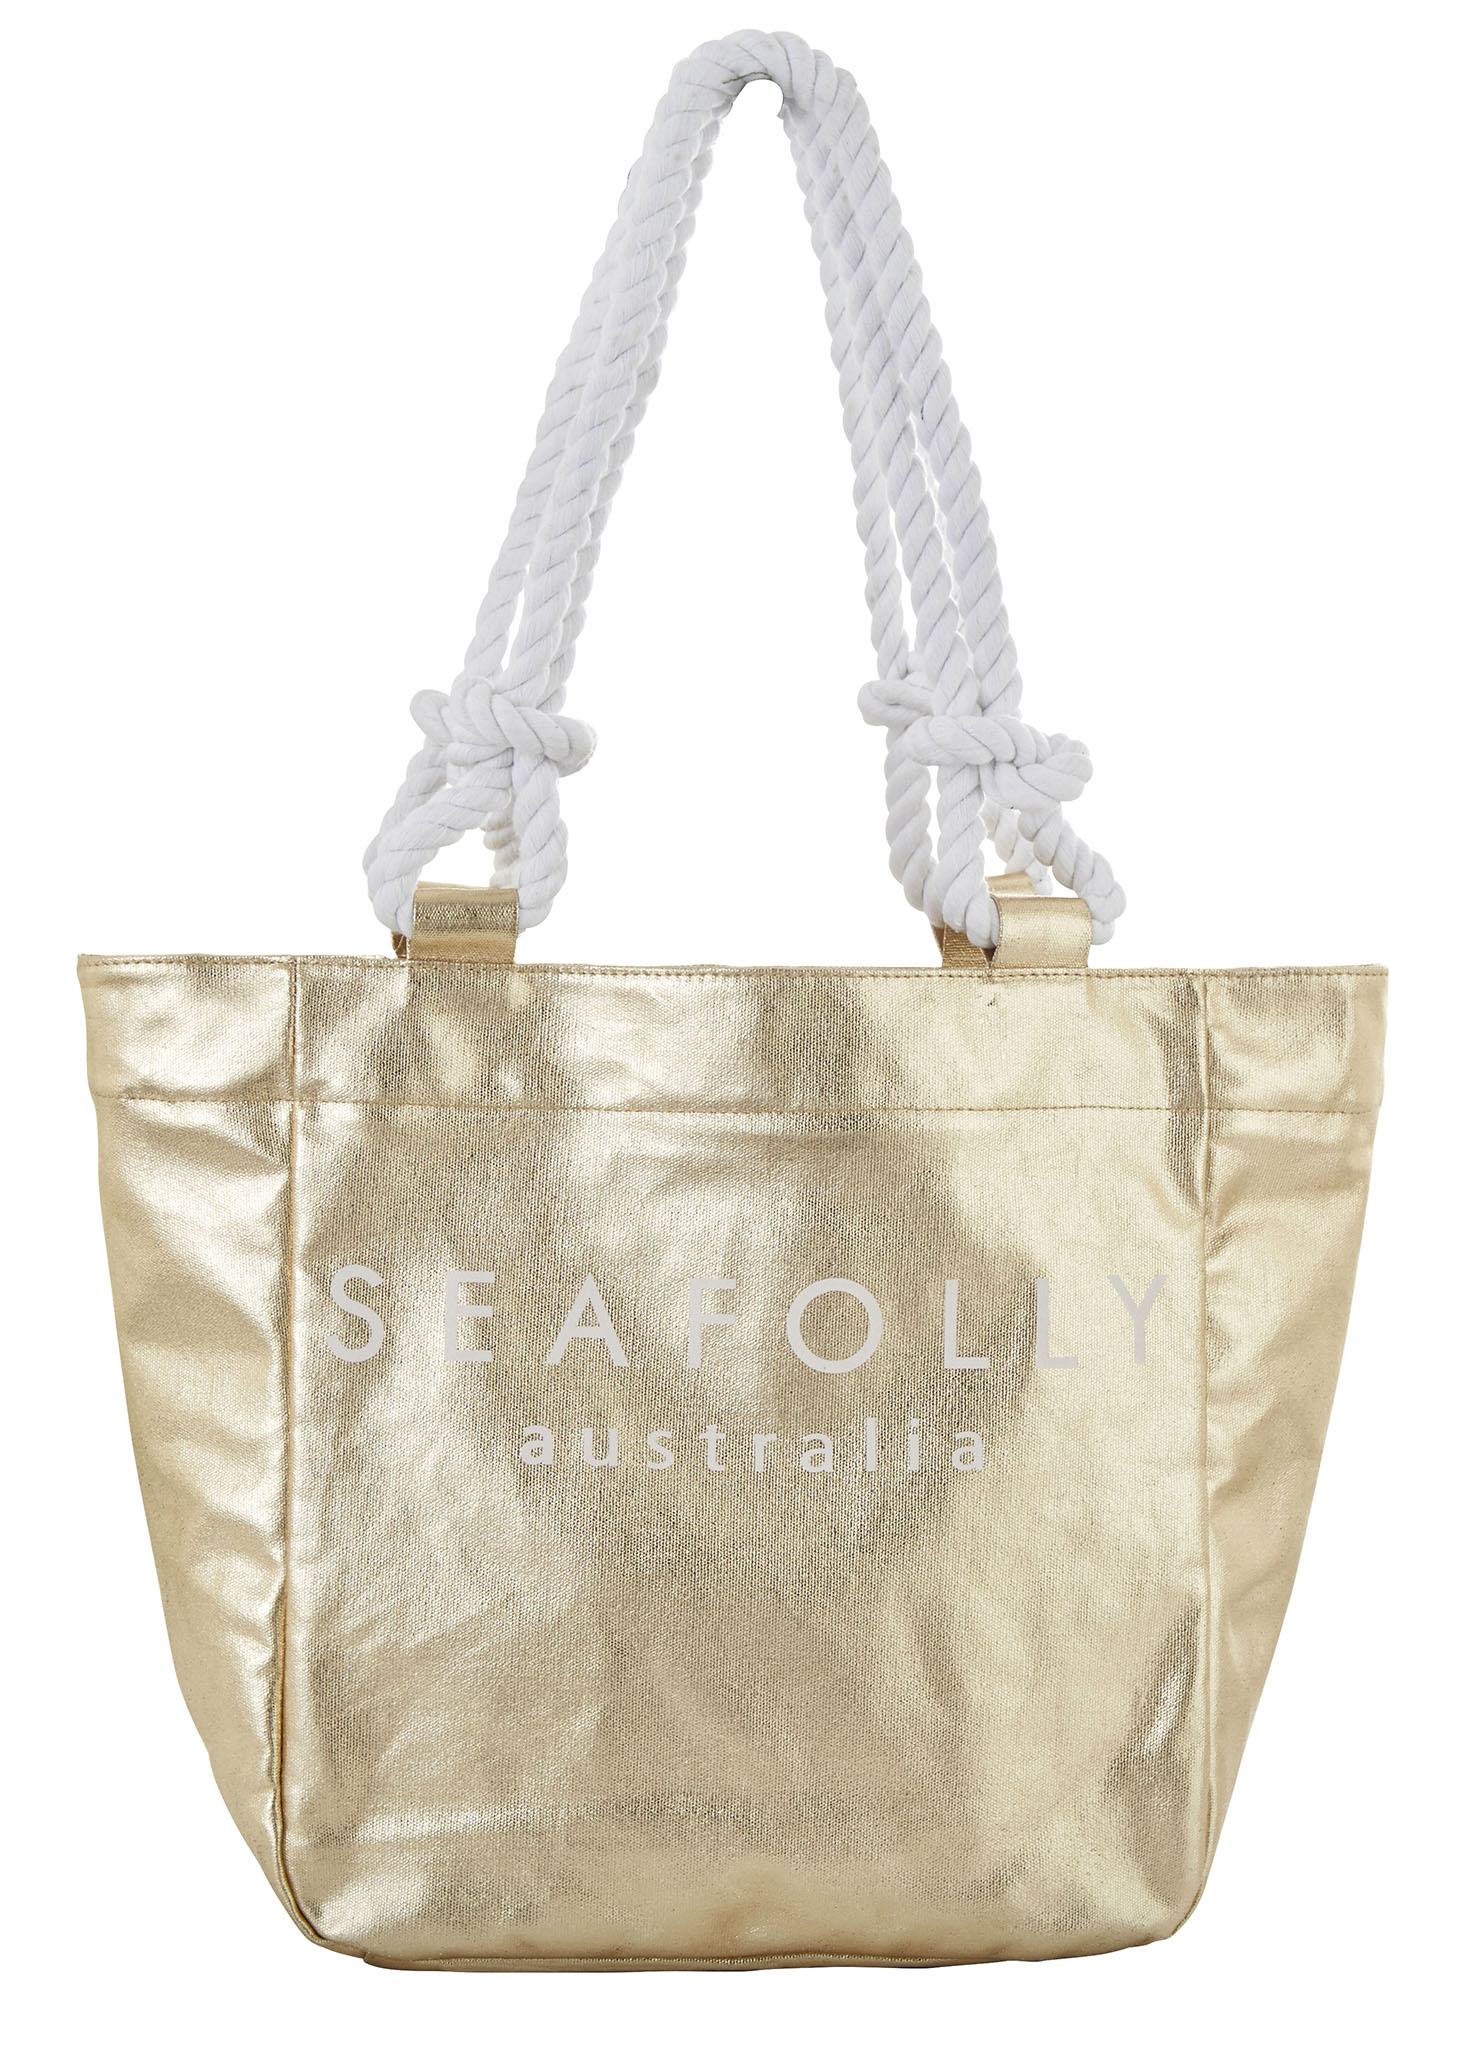 Seafolly Carried Away Canvas Rope Tote - Gold